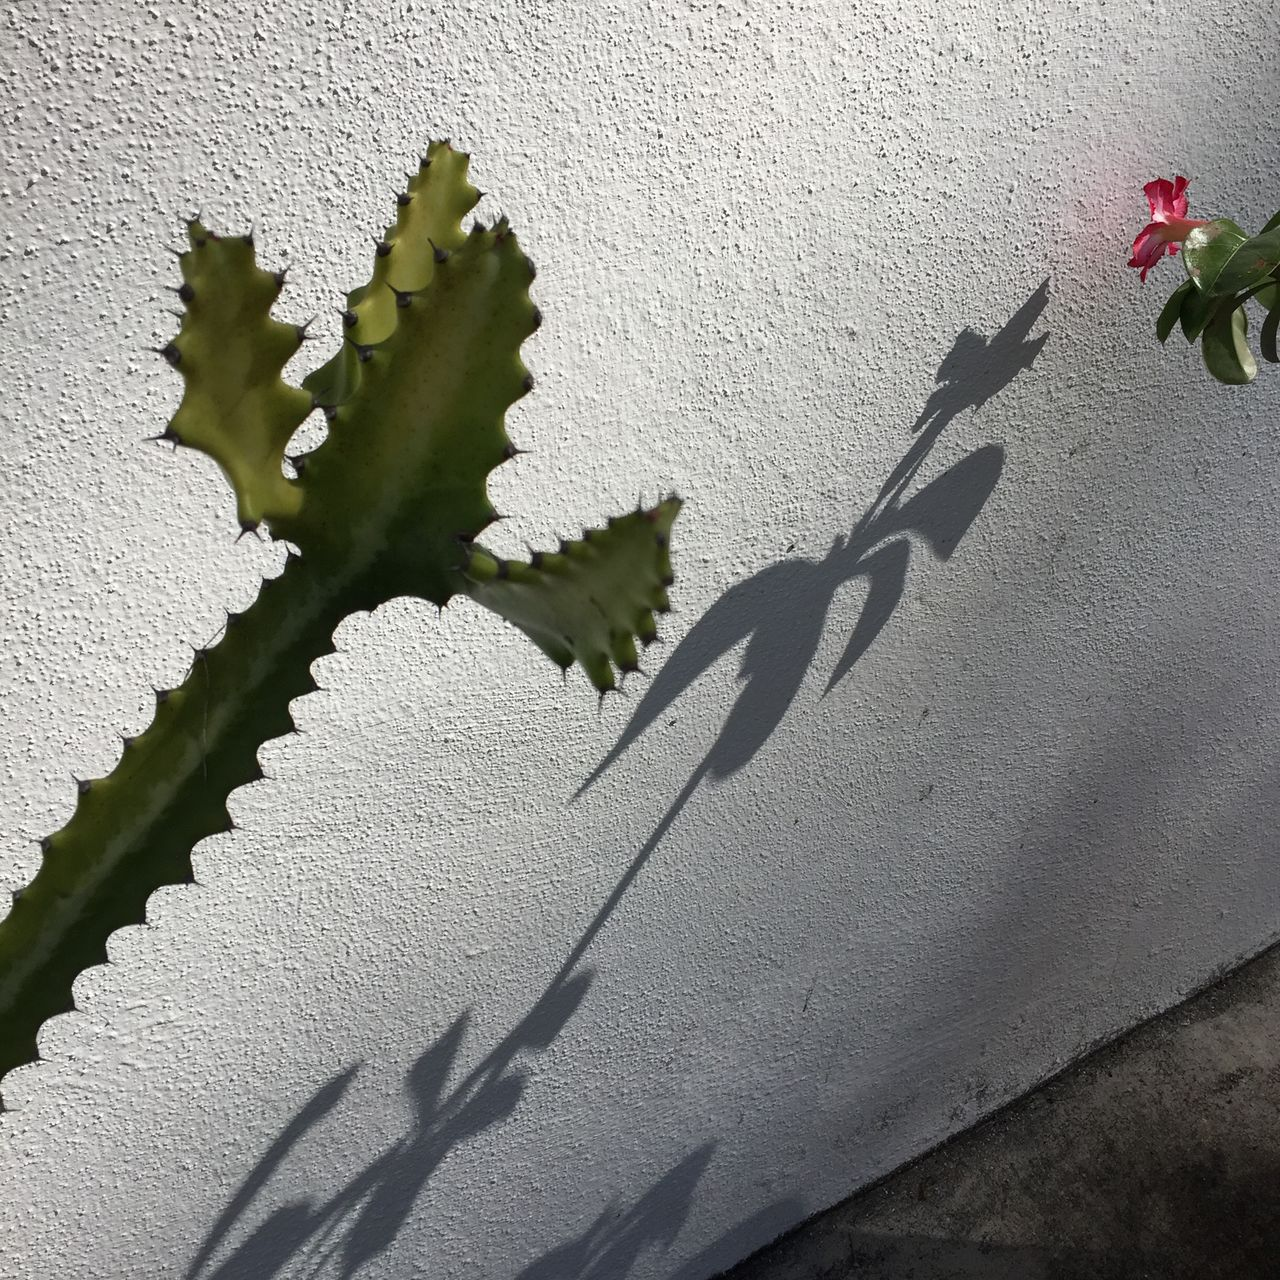 wall - building feature, shadow, growth, plant, sunlight, no people, day, nature, outdoors, leaf, close-up, flower, green color, ivy, architecture, beauty in nature, fragility, building exterior, freshness